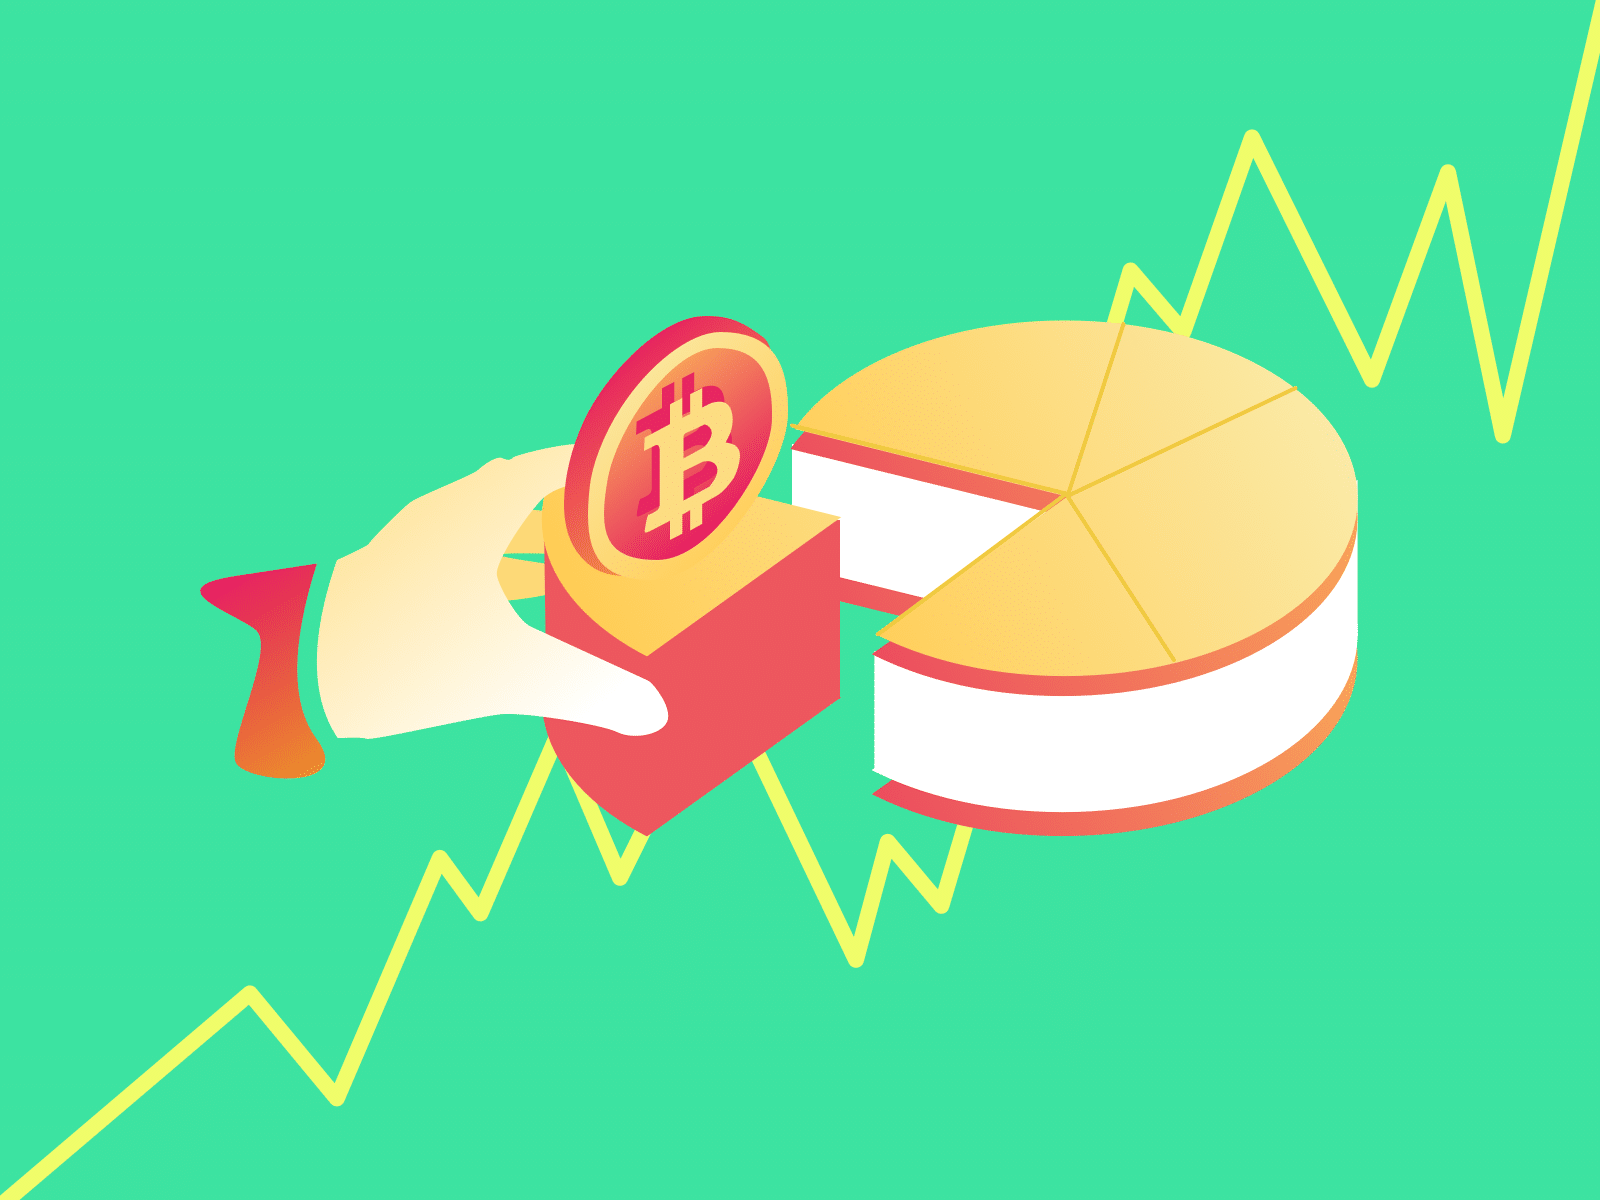 Why People Invest in Bitcoin